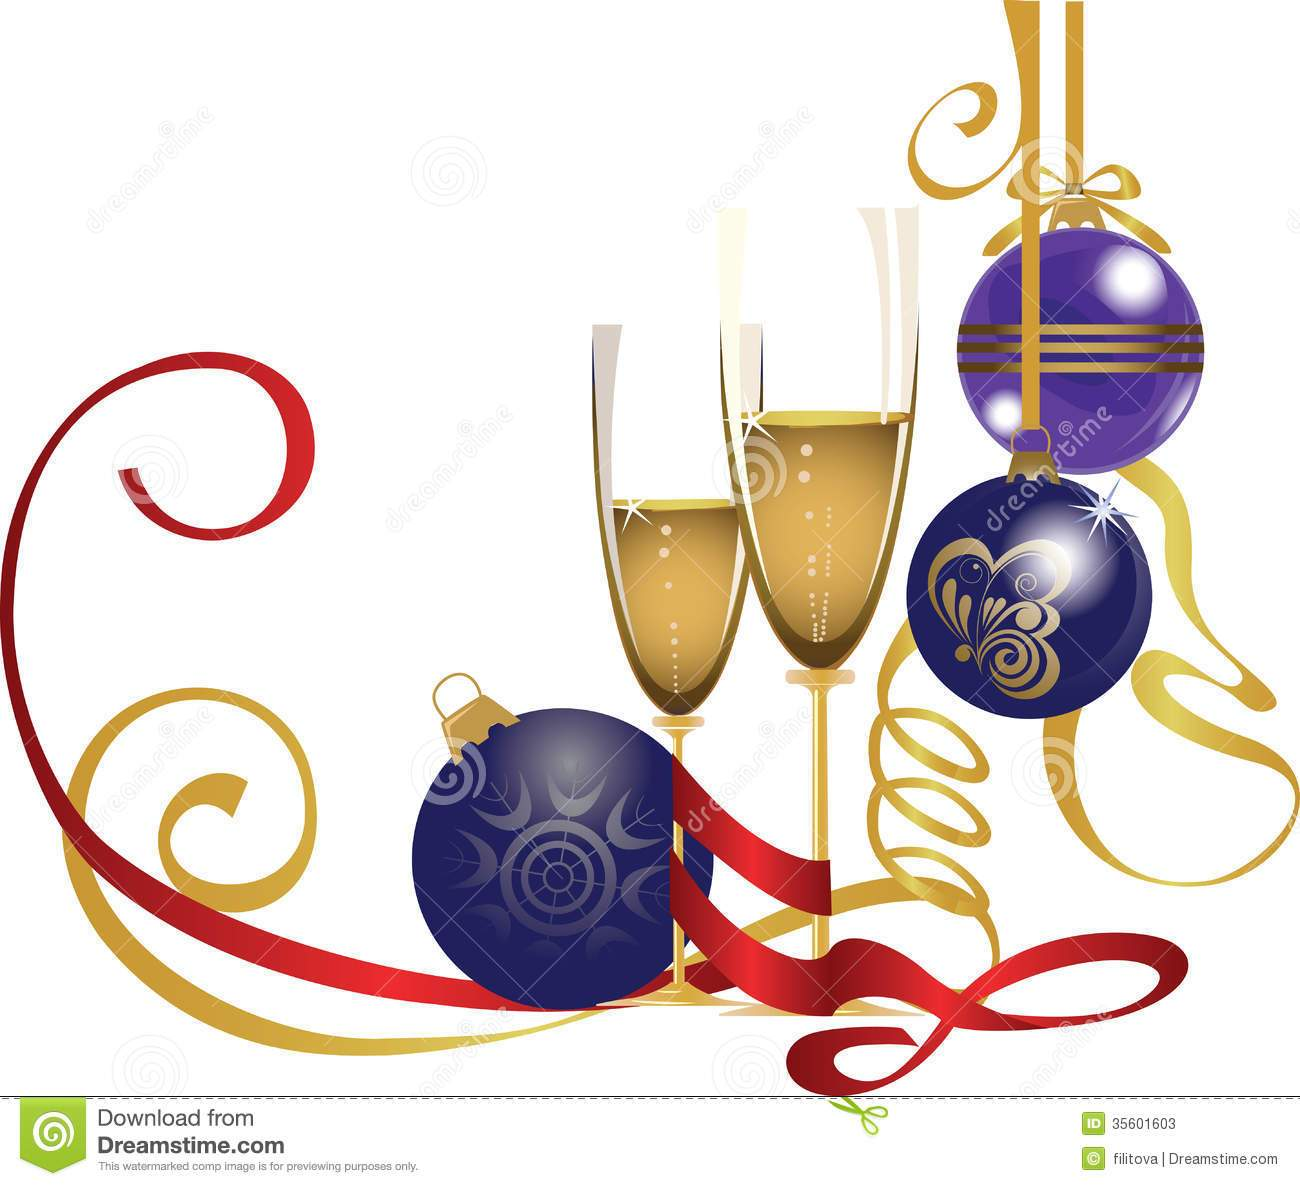 Christmas champagne clipart